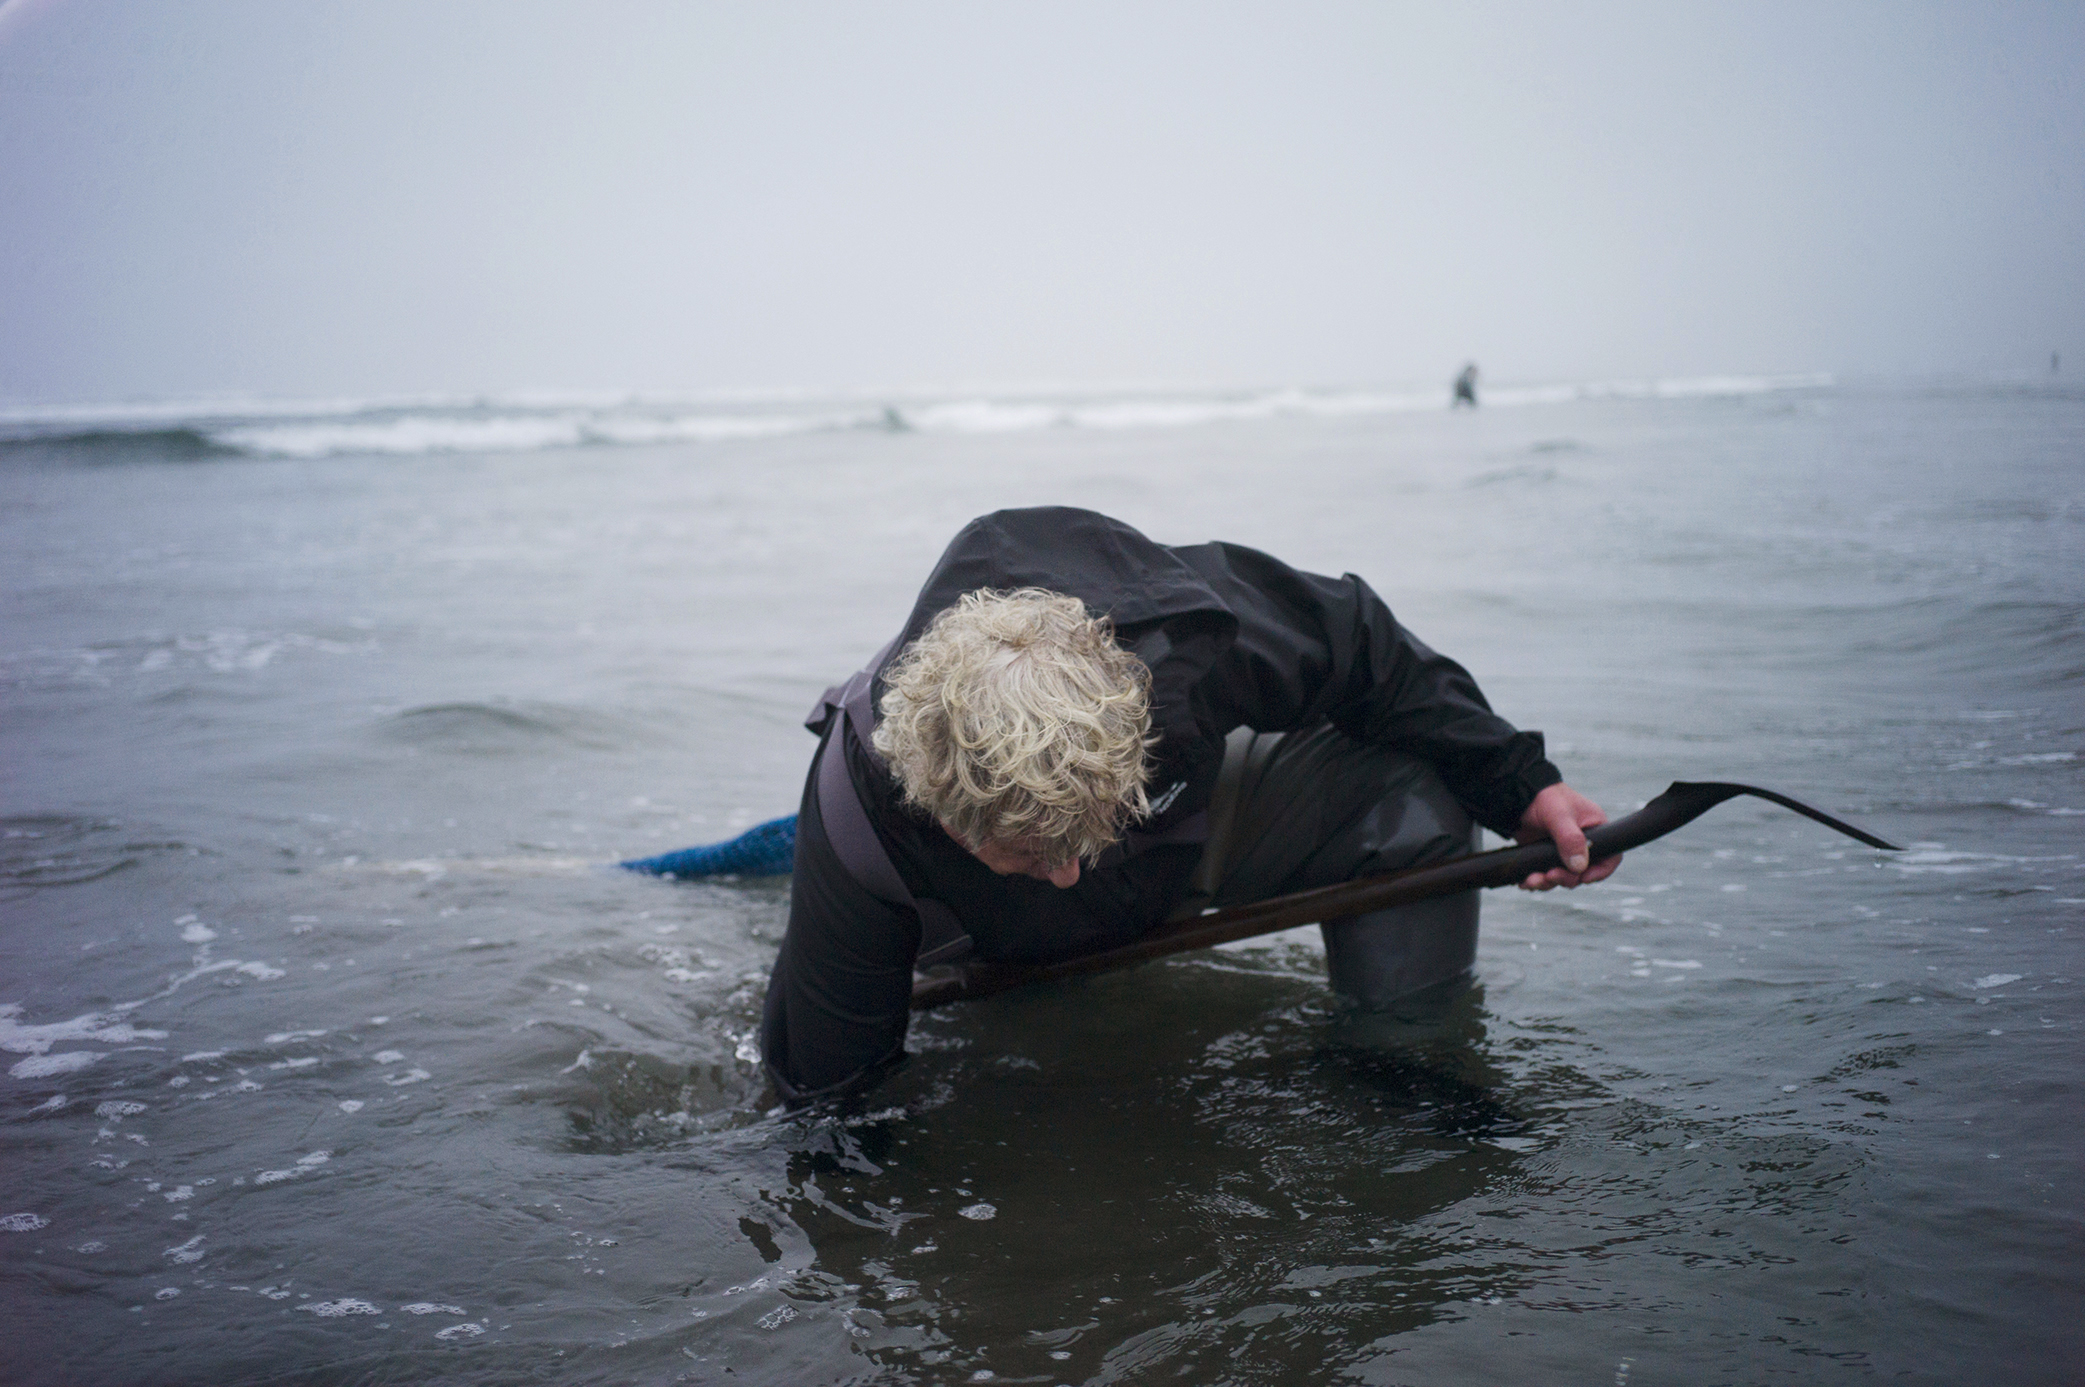 Richard Darbonne photographs Ron Neva as he reaches down into the water in hopes of finding a razor clam for 1859 Magazine